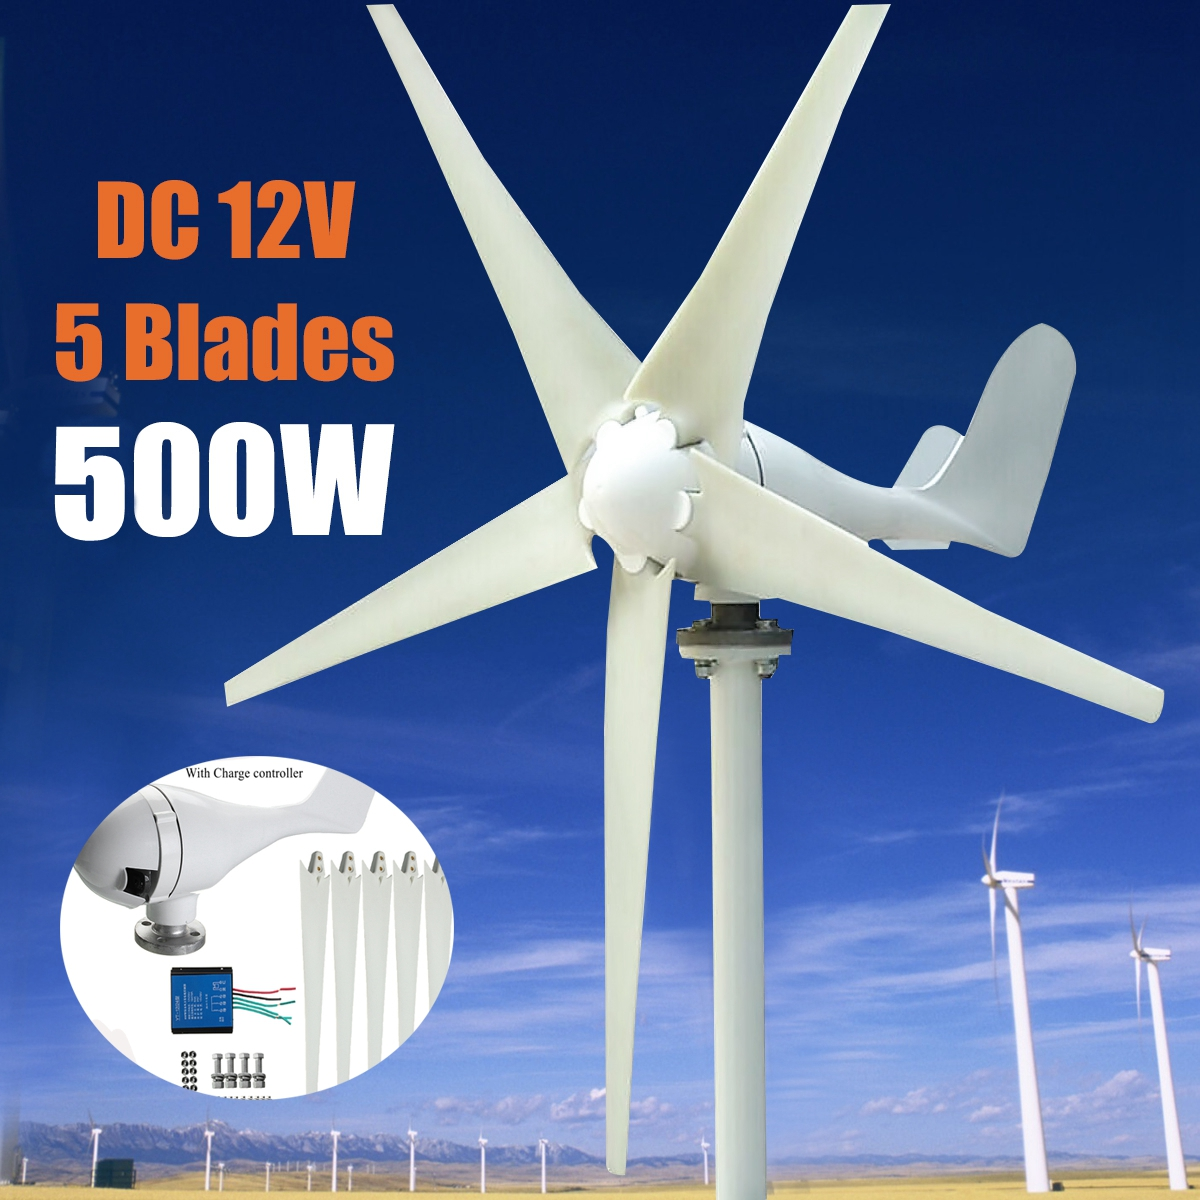 все цены на Max 600W Wind Turbine Generator DC 12V/24V 5 Blade Power Supply with Charge Controller for Home Hybrid streetlight use онлайн